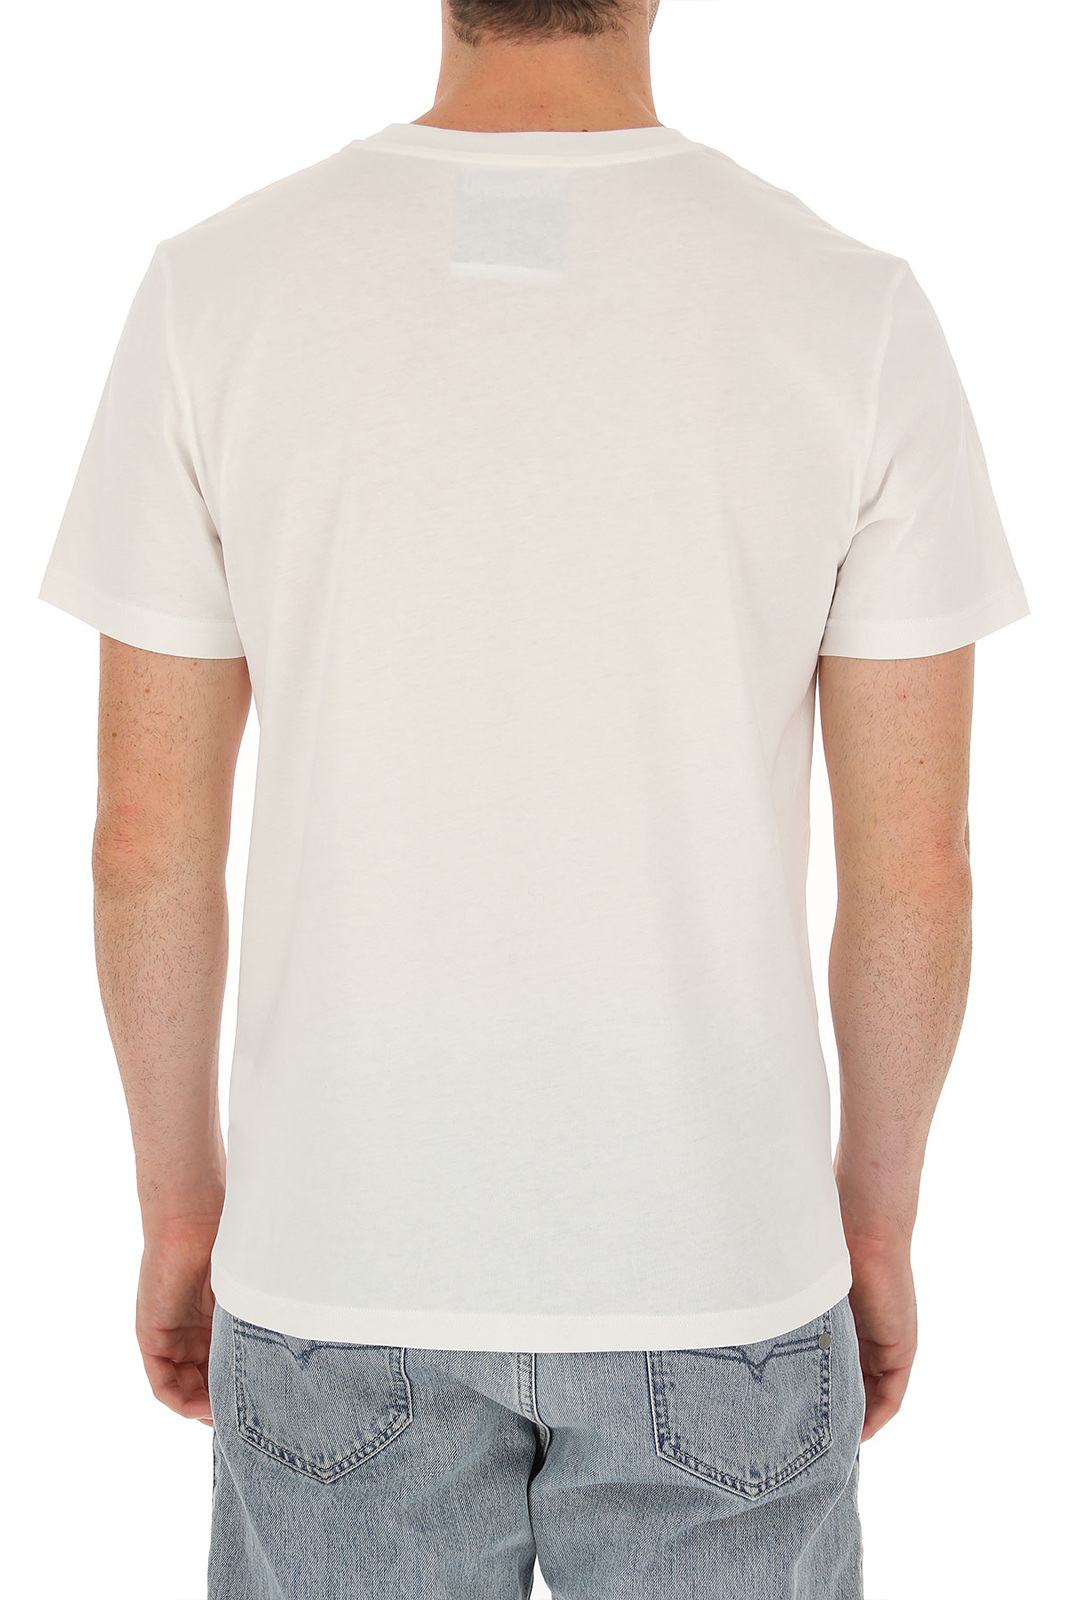 Tee-shirts  Moschino ZJ0707 WHITE